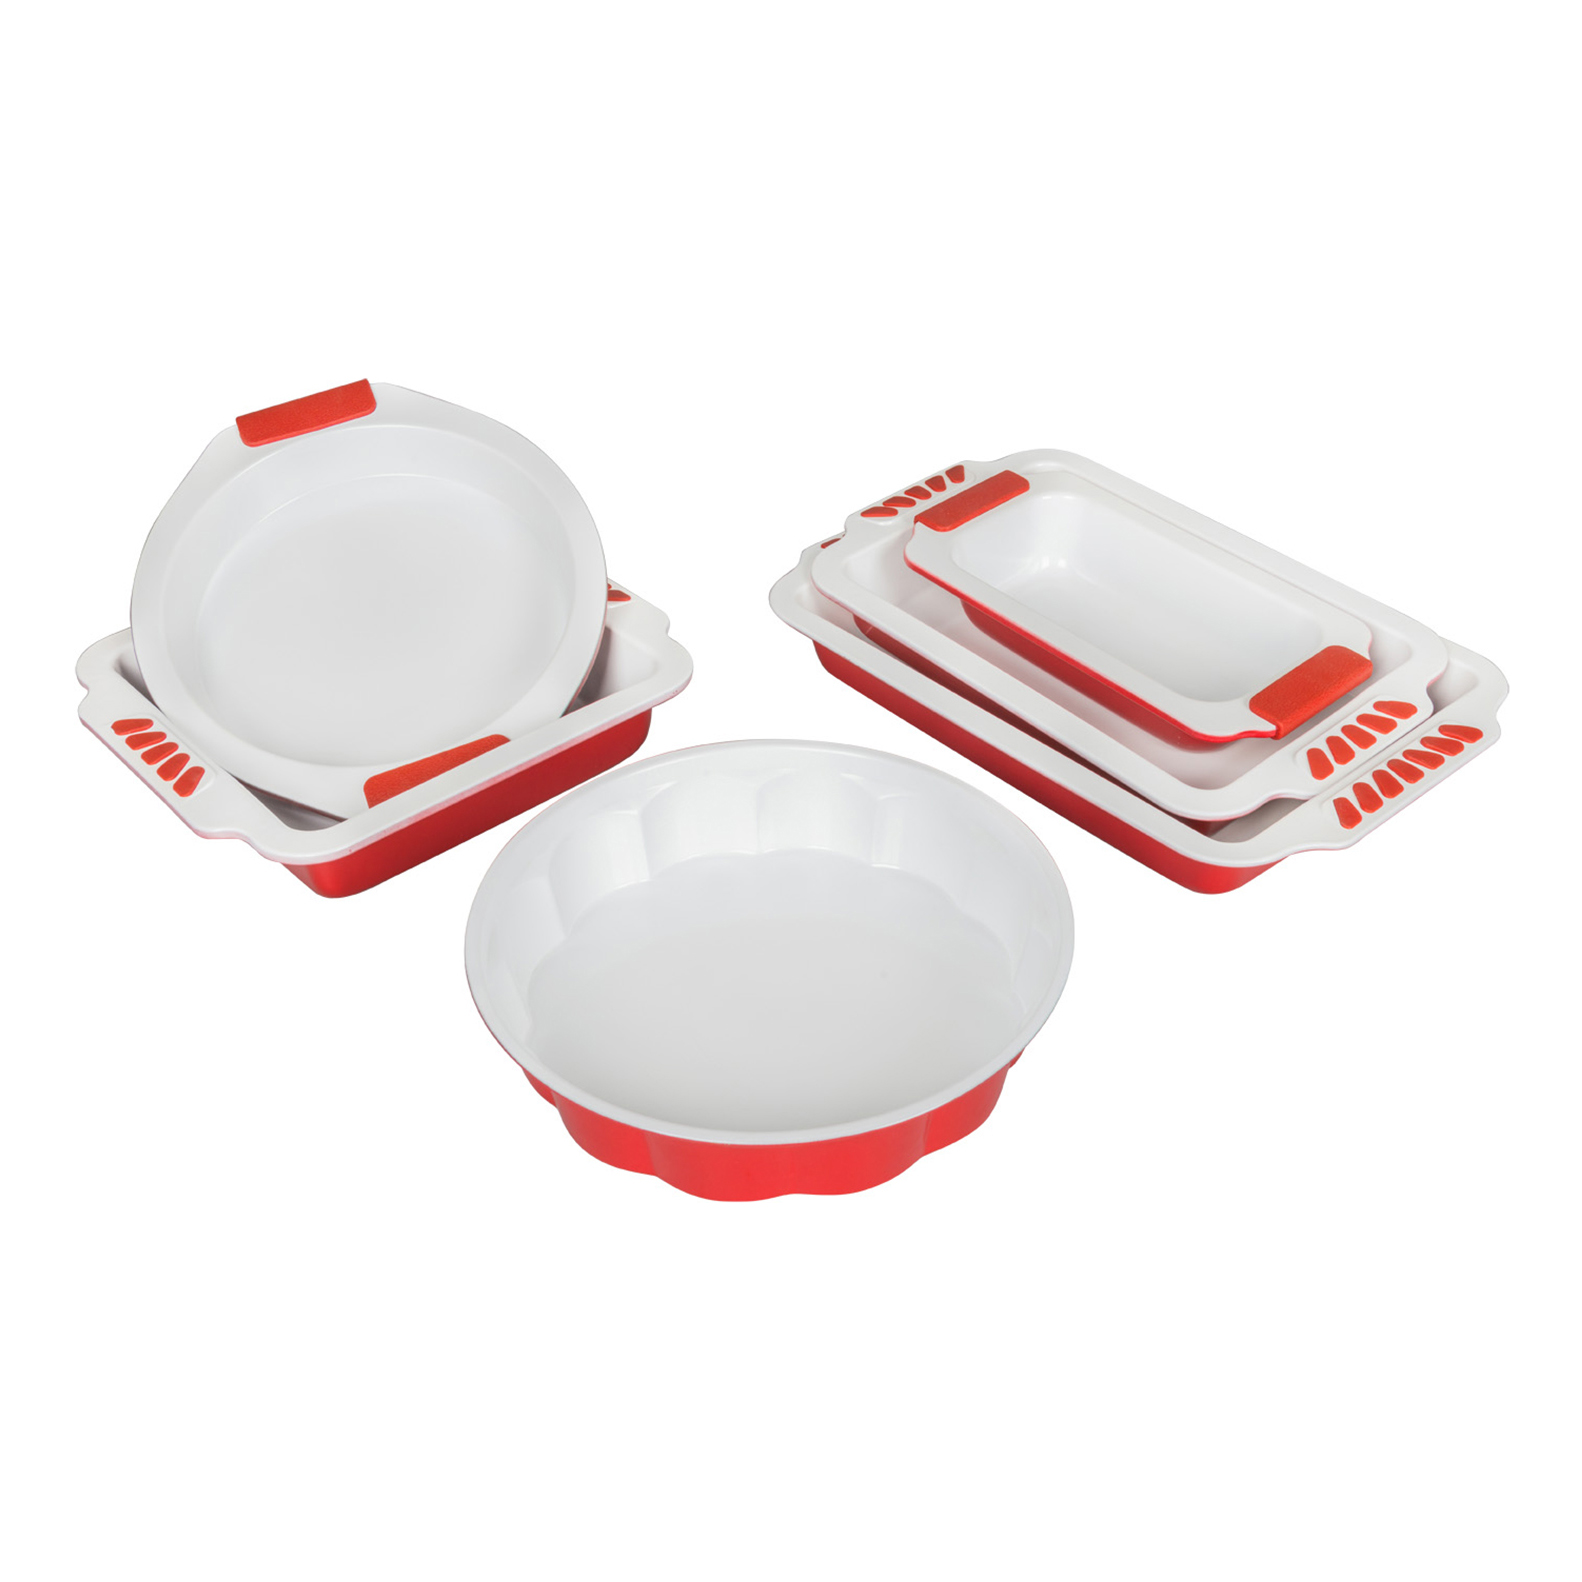 WHITE CERAMIC BAKEWARE SERIESCOLOR12